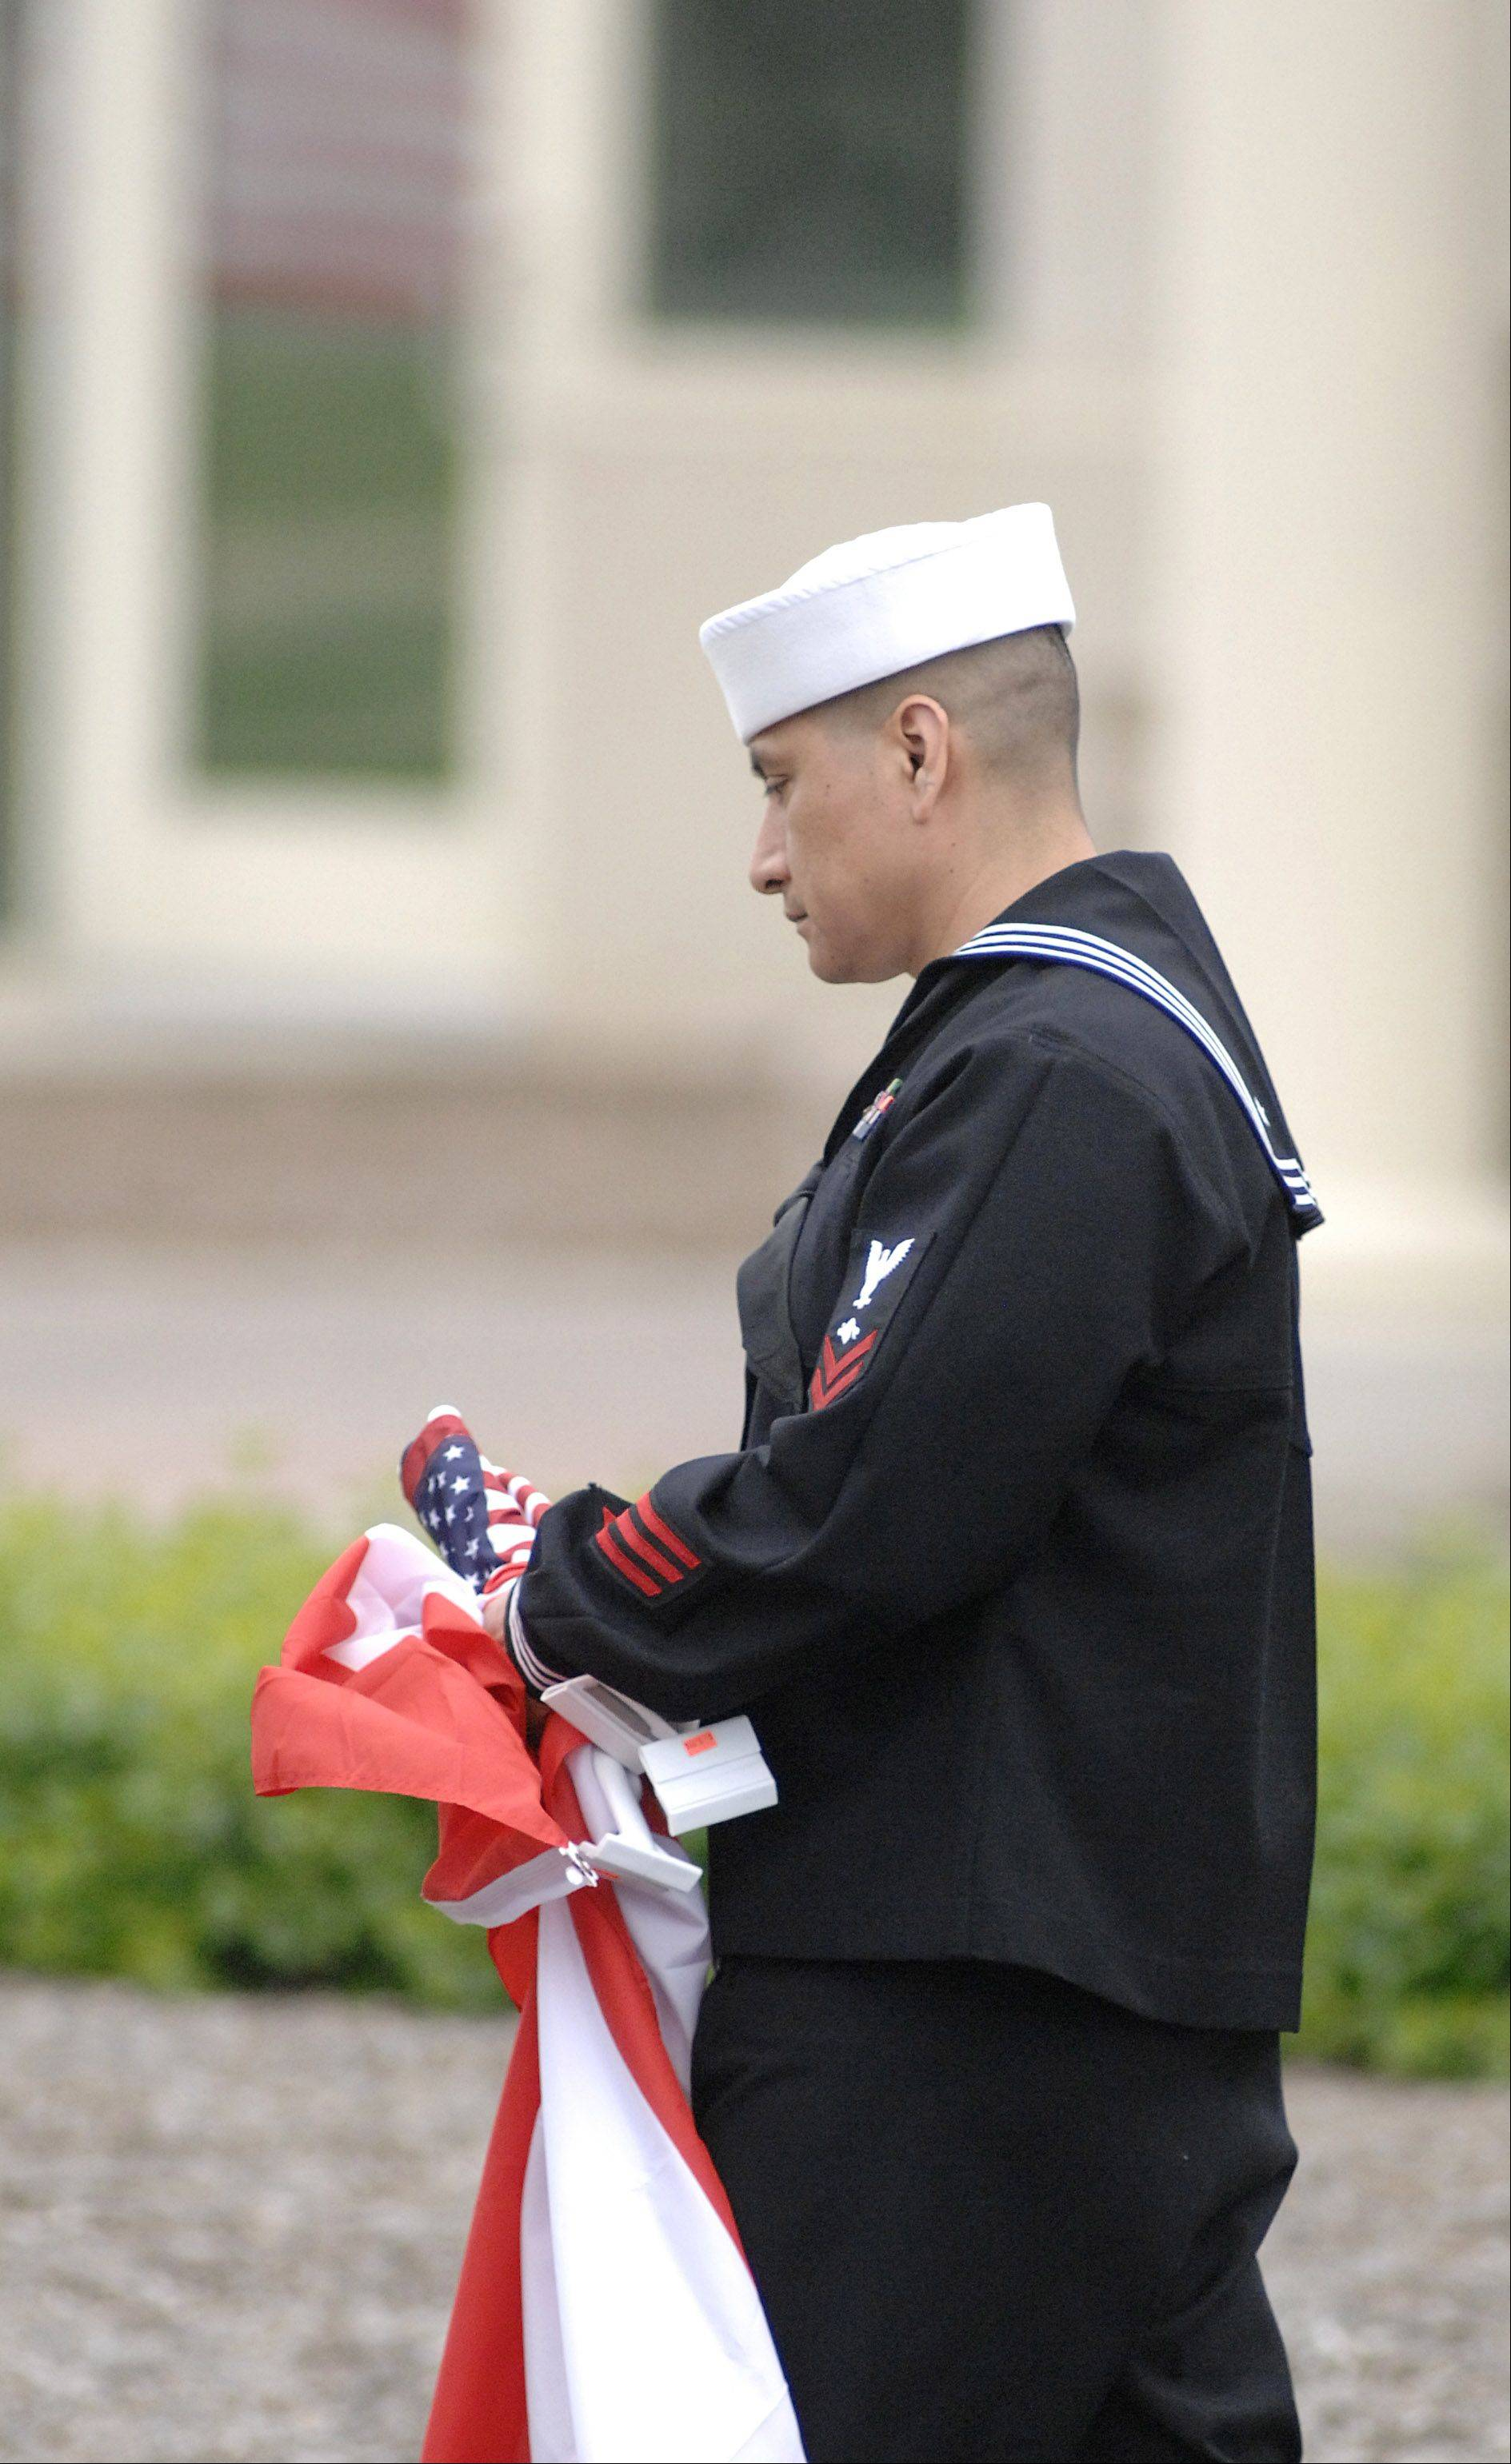 Enrique Martinez of Huntley, father of the late Cpl. Alex Martinez, leaves Life Changers International Church in Hoffman Estates after being presented with flags by a VFW member on Saturday.